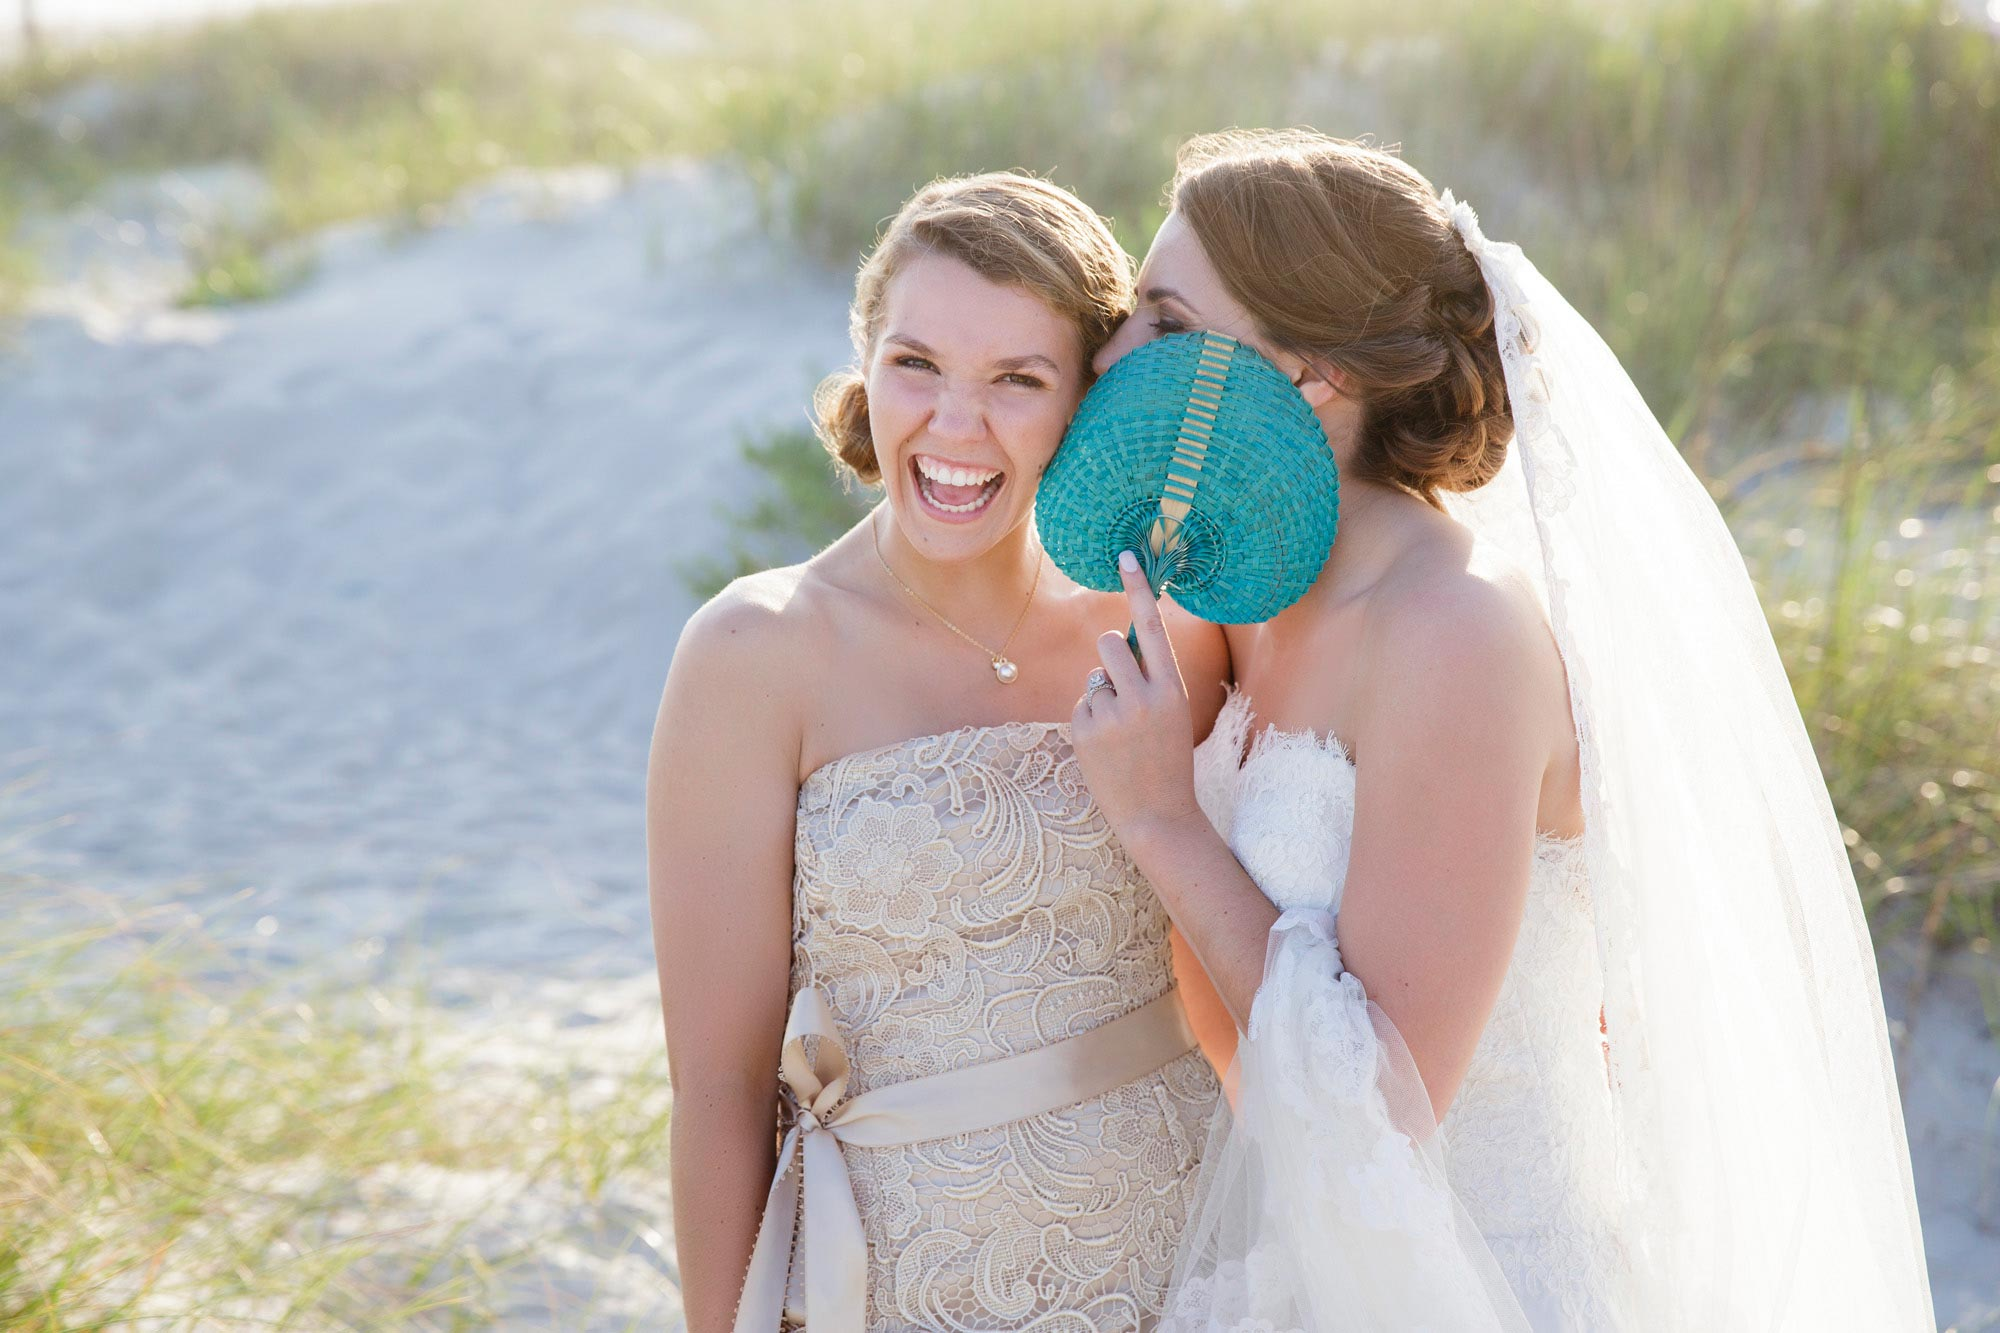 Cute picture of the bride with her sister on the beach at the Coral Bay Club in Atlantic Beach